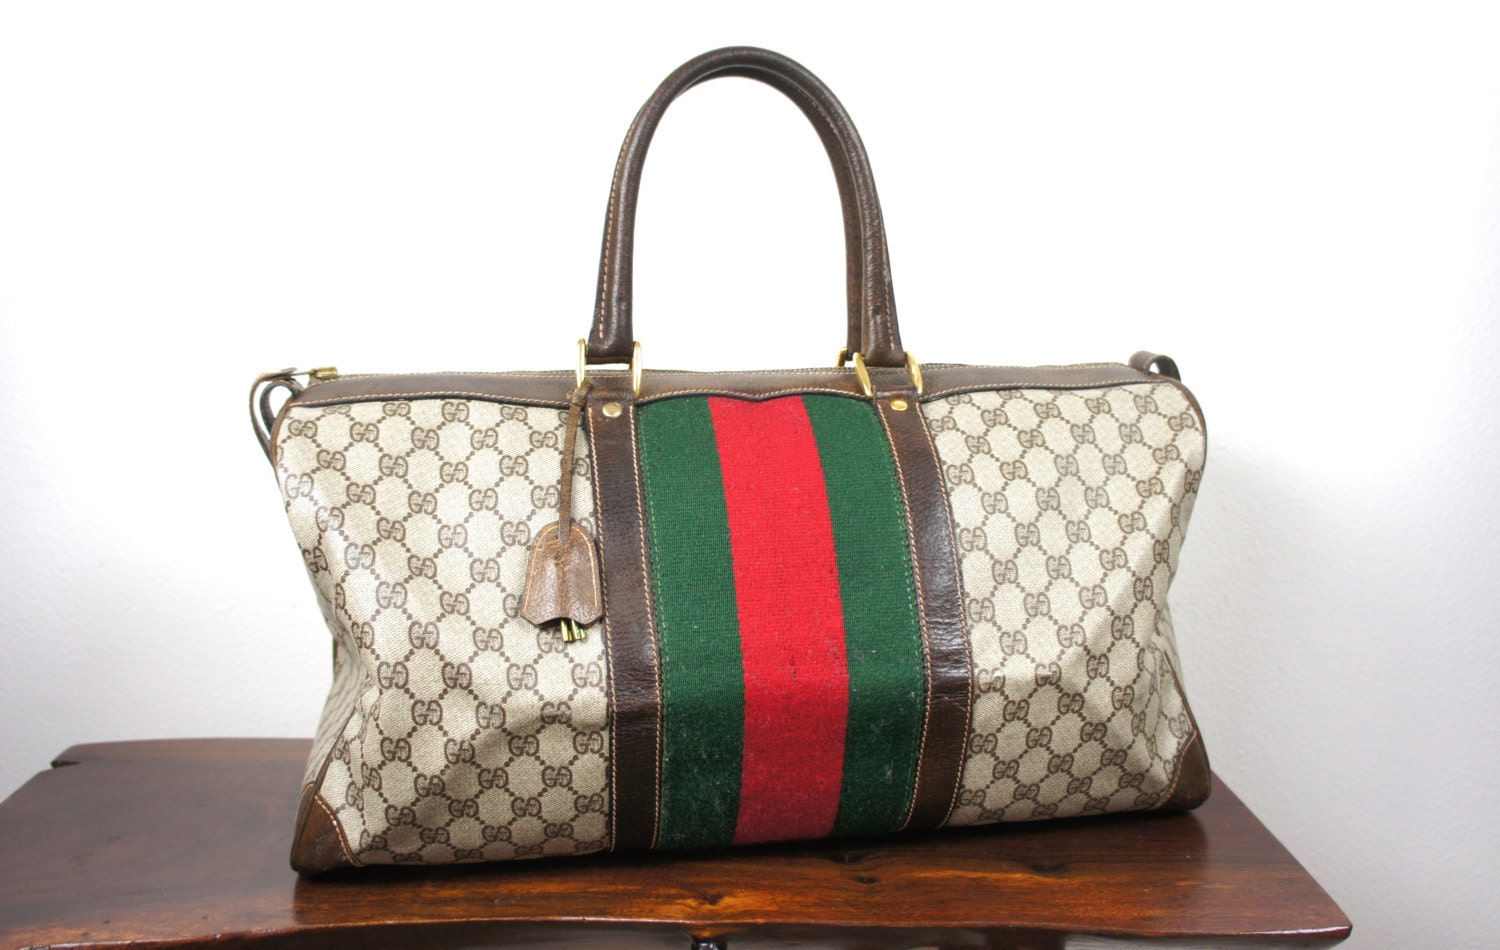 Gucci Bag Red And Green Strap